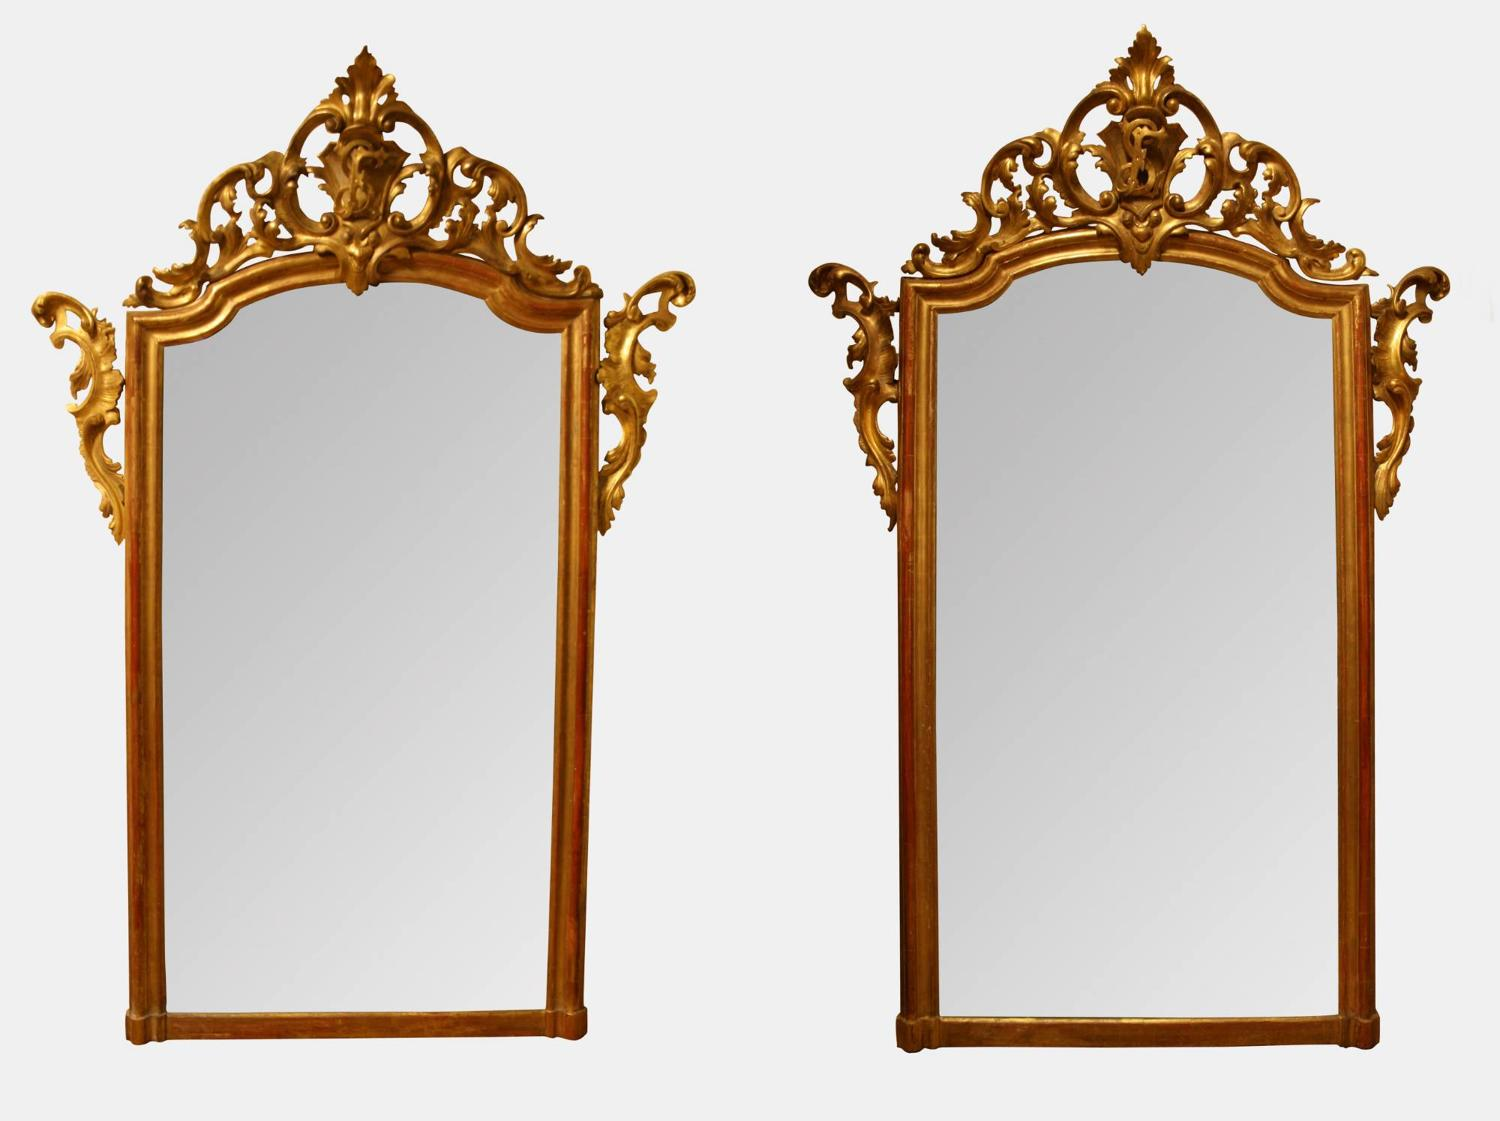 Large Gilded Mirrors